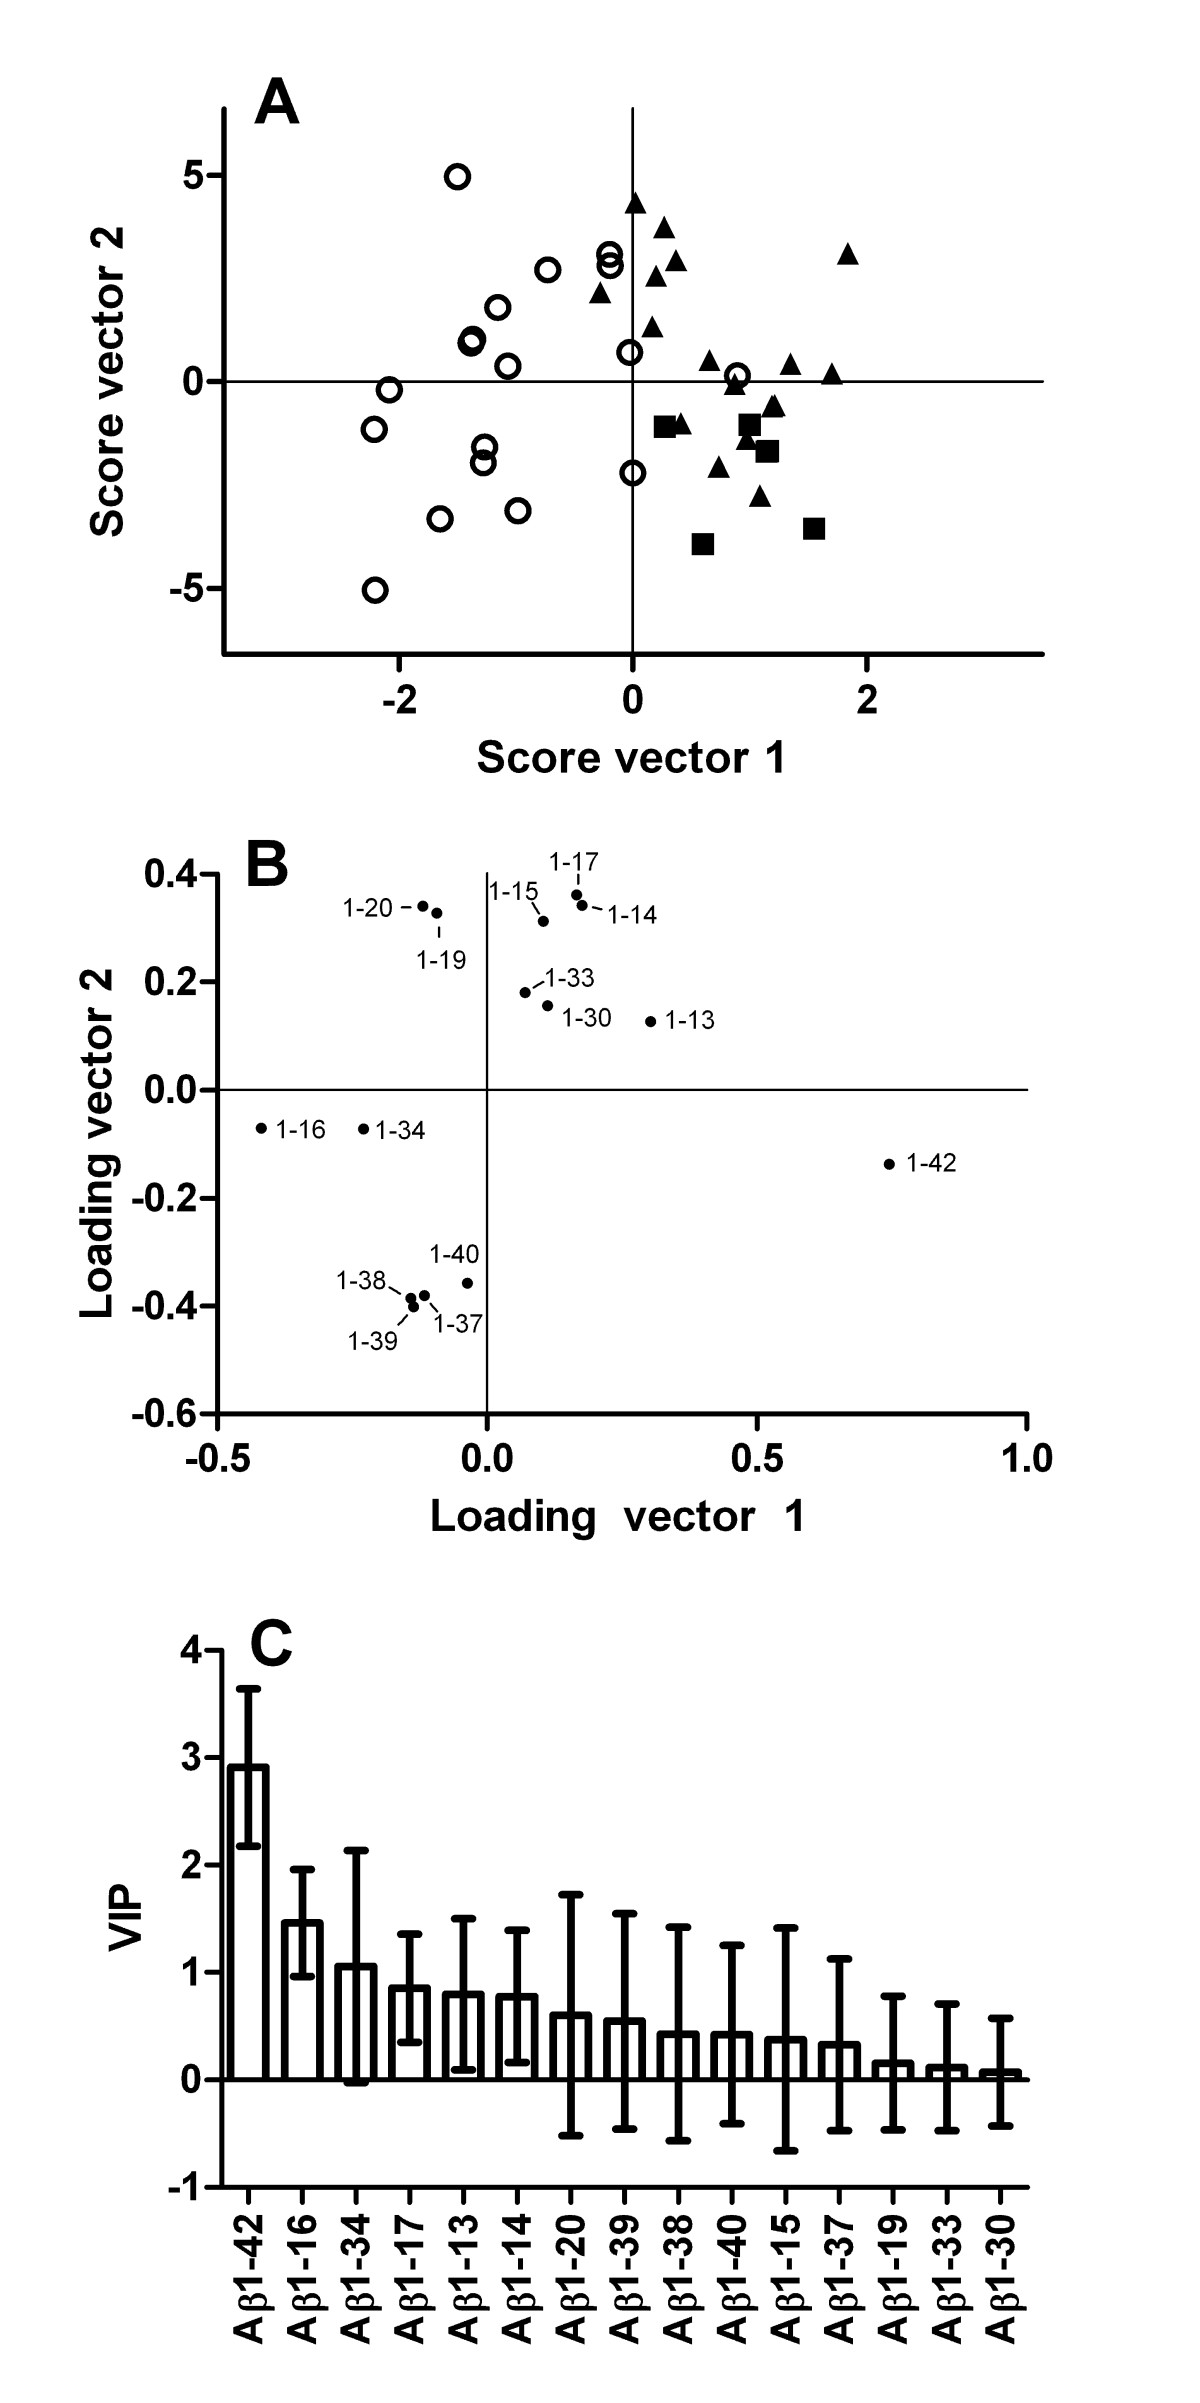 http://static-content.springer.com/image/art%3A10.1186%2F1750-1326-5-2/MediaObjects/13024_2009_Article_120_Fig4_HTML.jpg